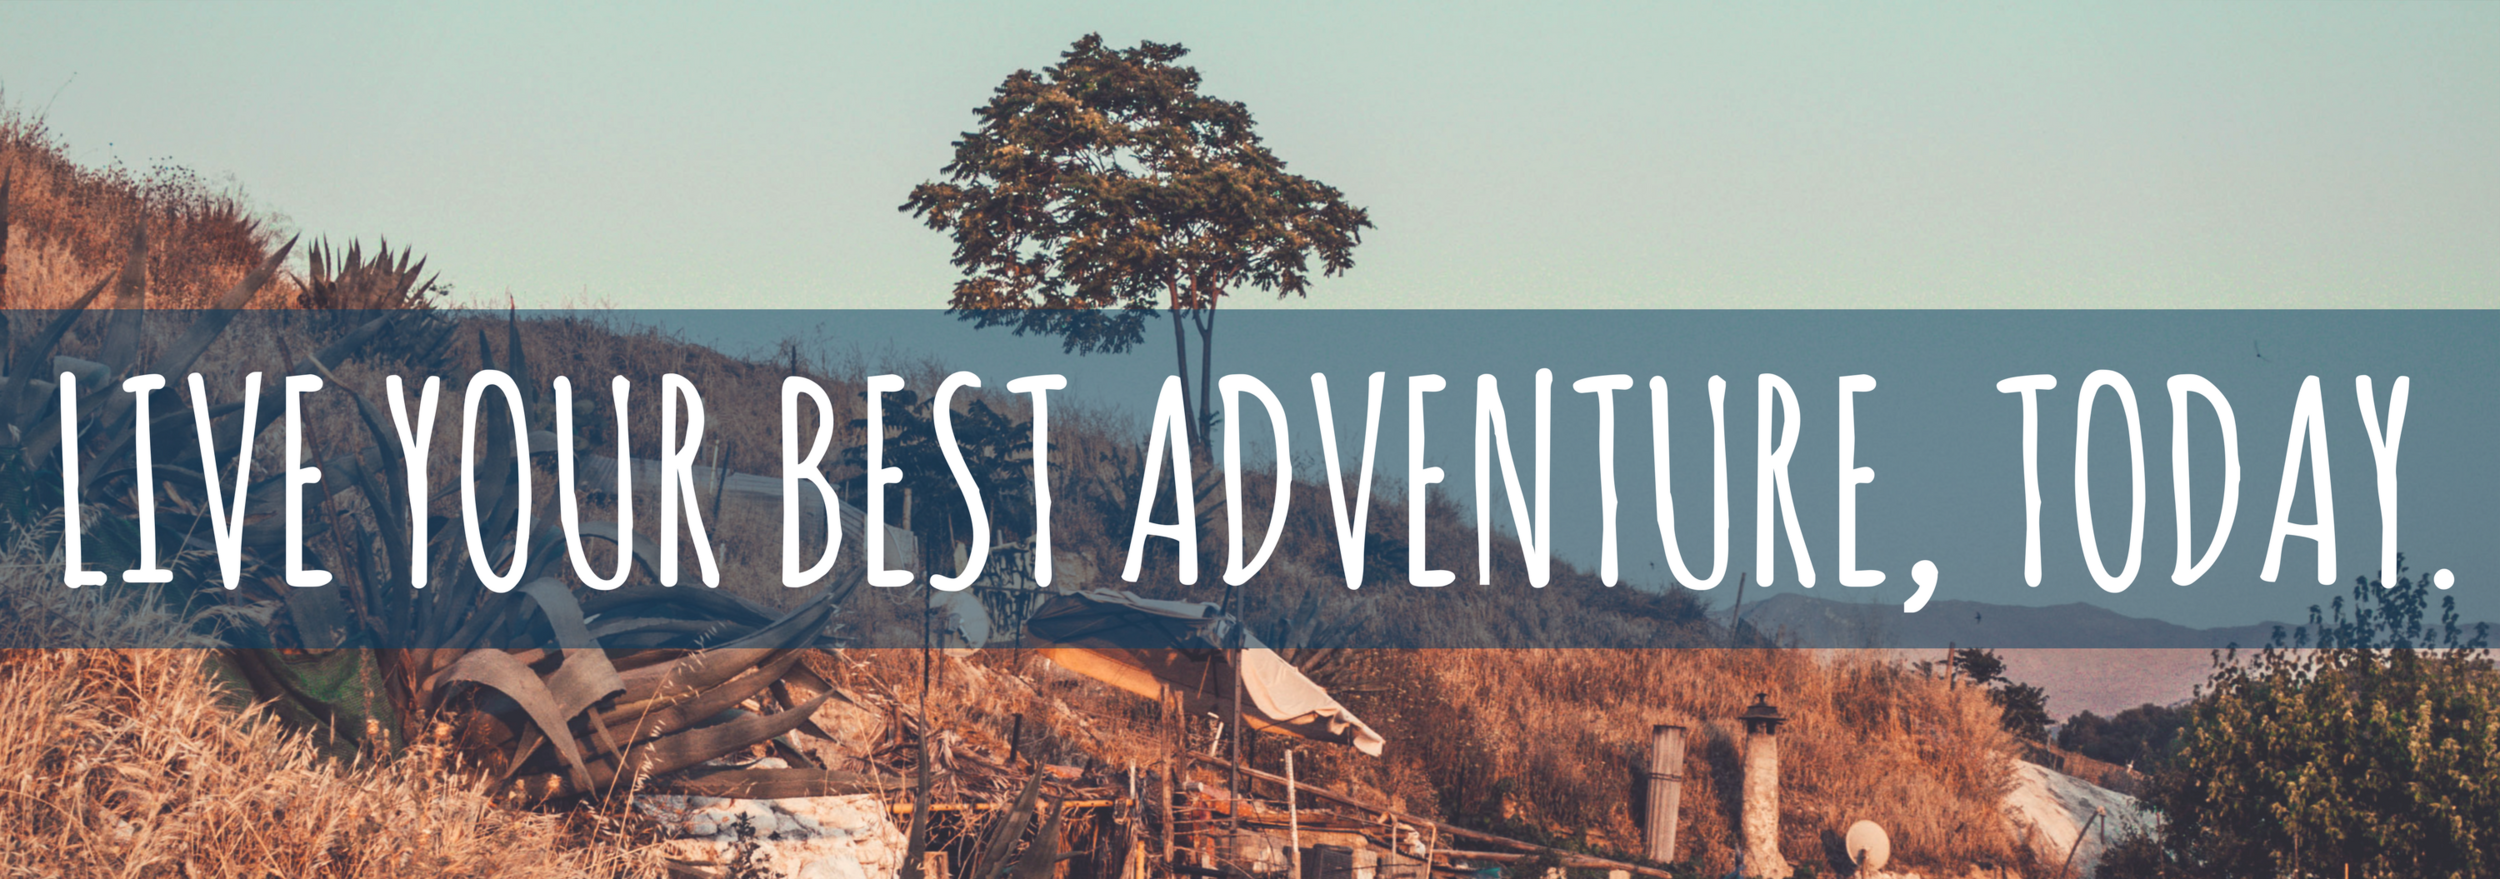 Live your best adventure, today.